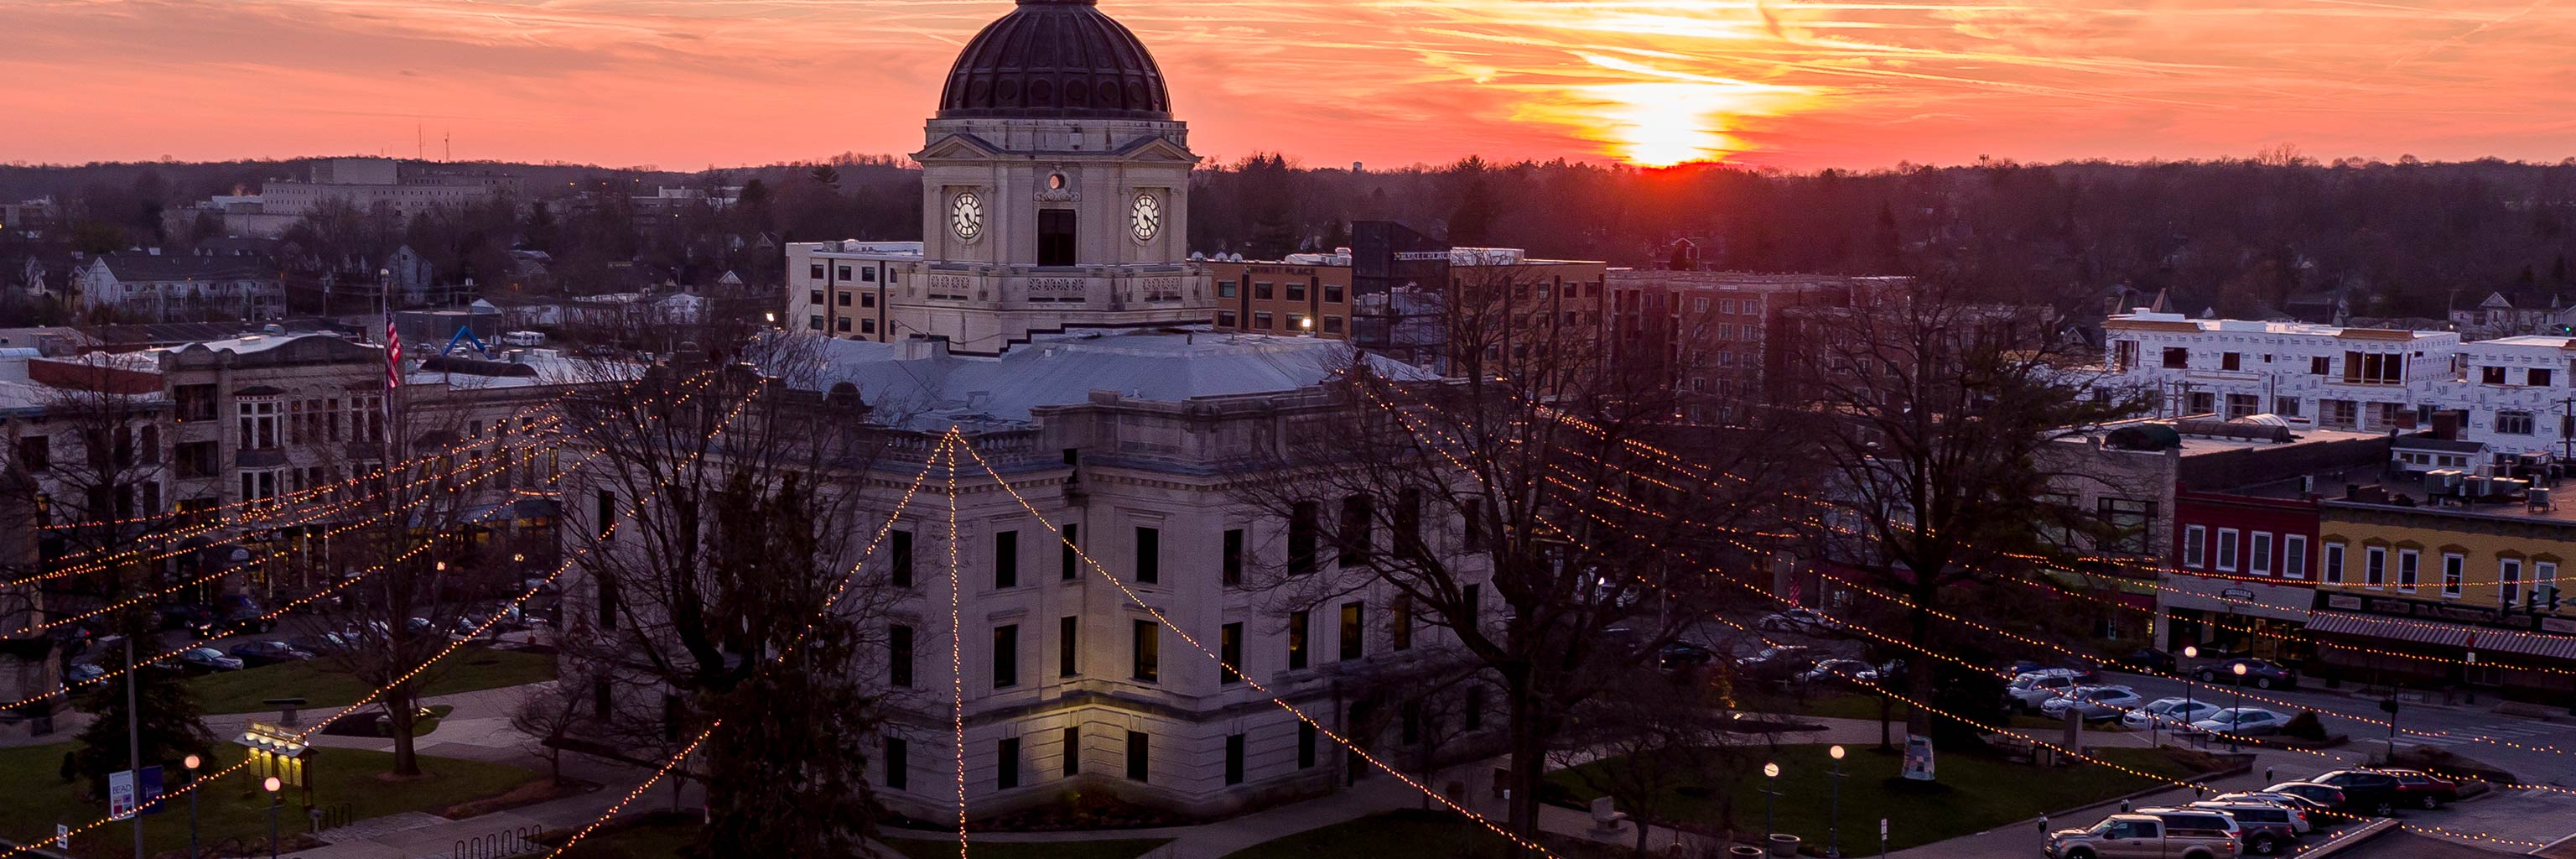 courthouse in Bloomington with lights and sunset